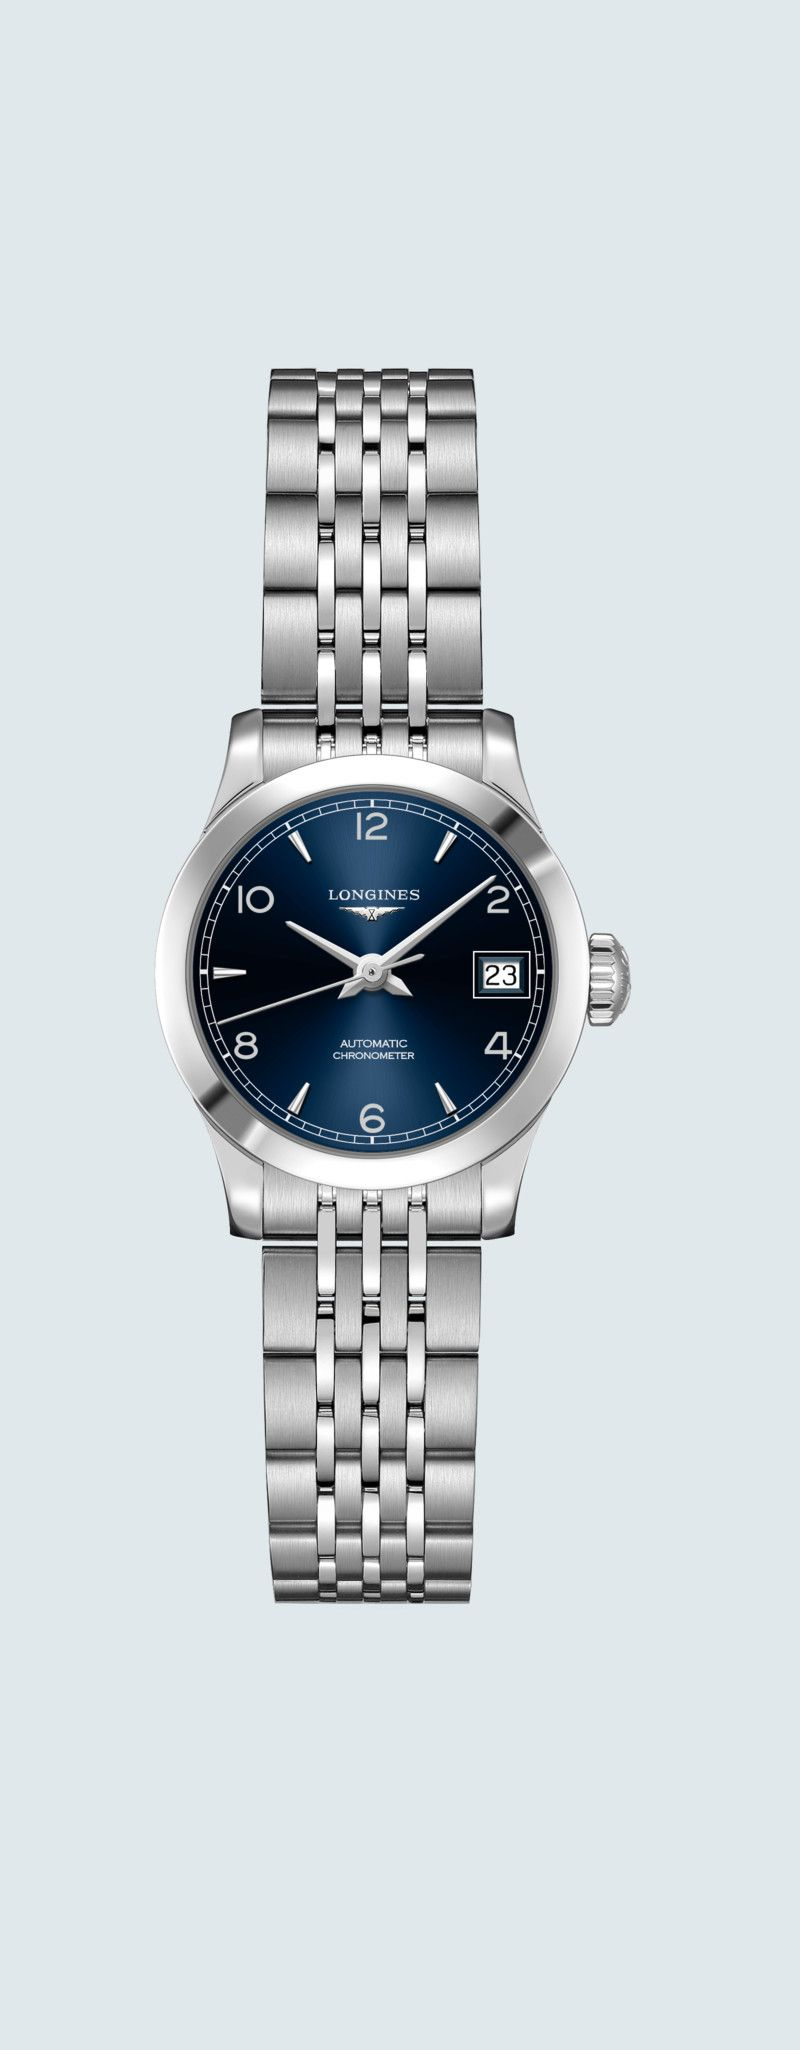 26.00 mm Stainless steel case with Sunray blue dial and Stainless steel strap - case zoom view